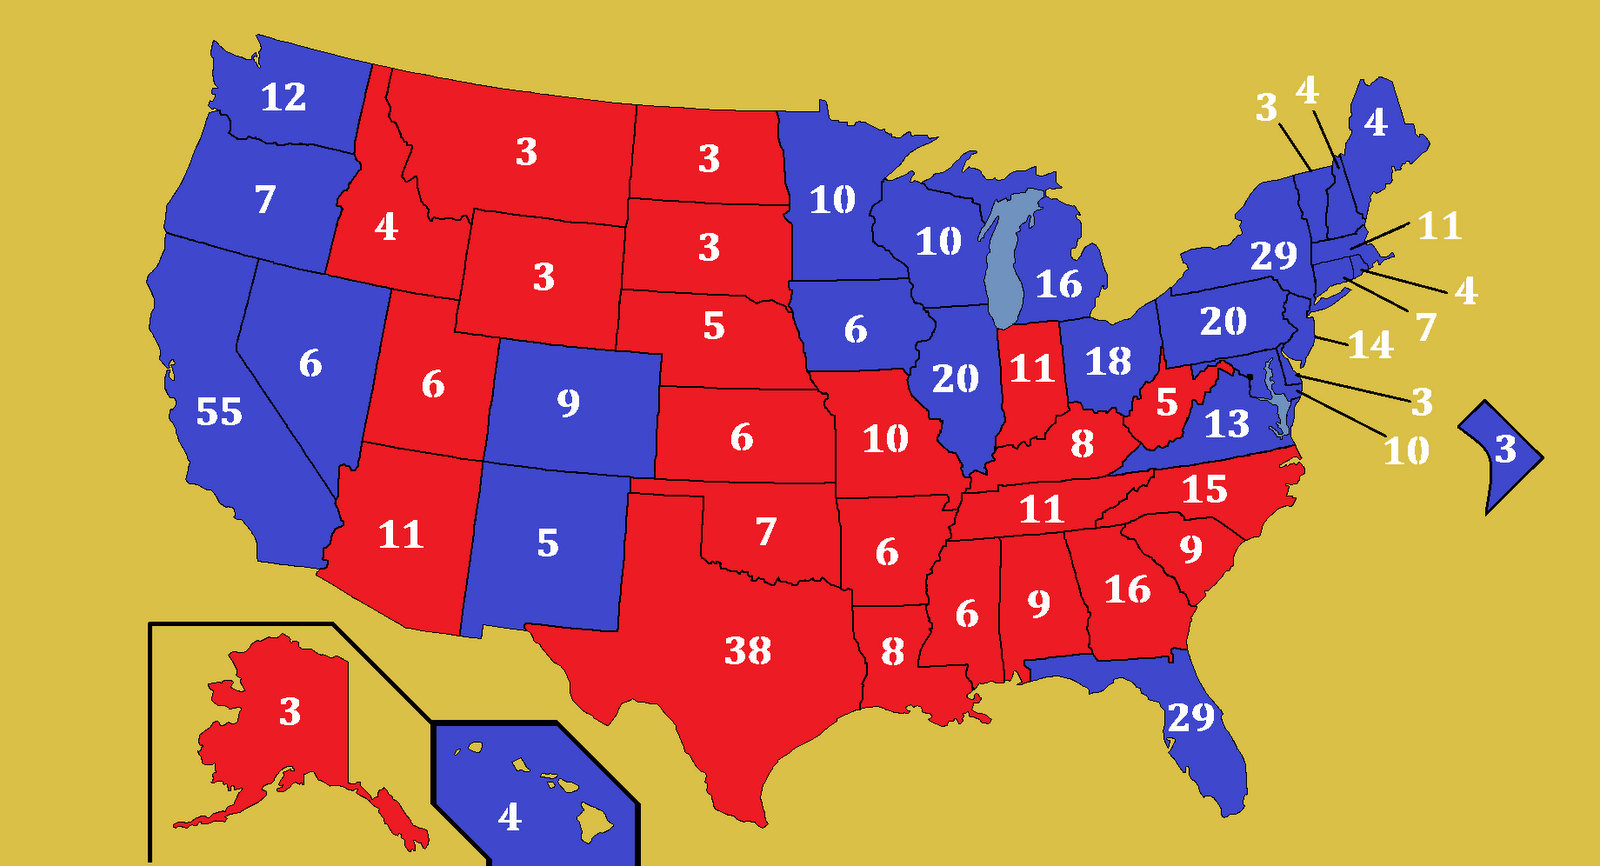 electoral college map 2010 - photo #8